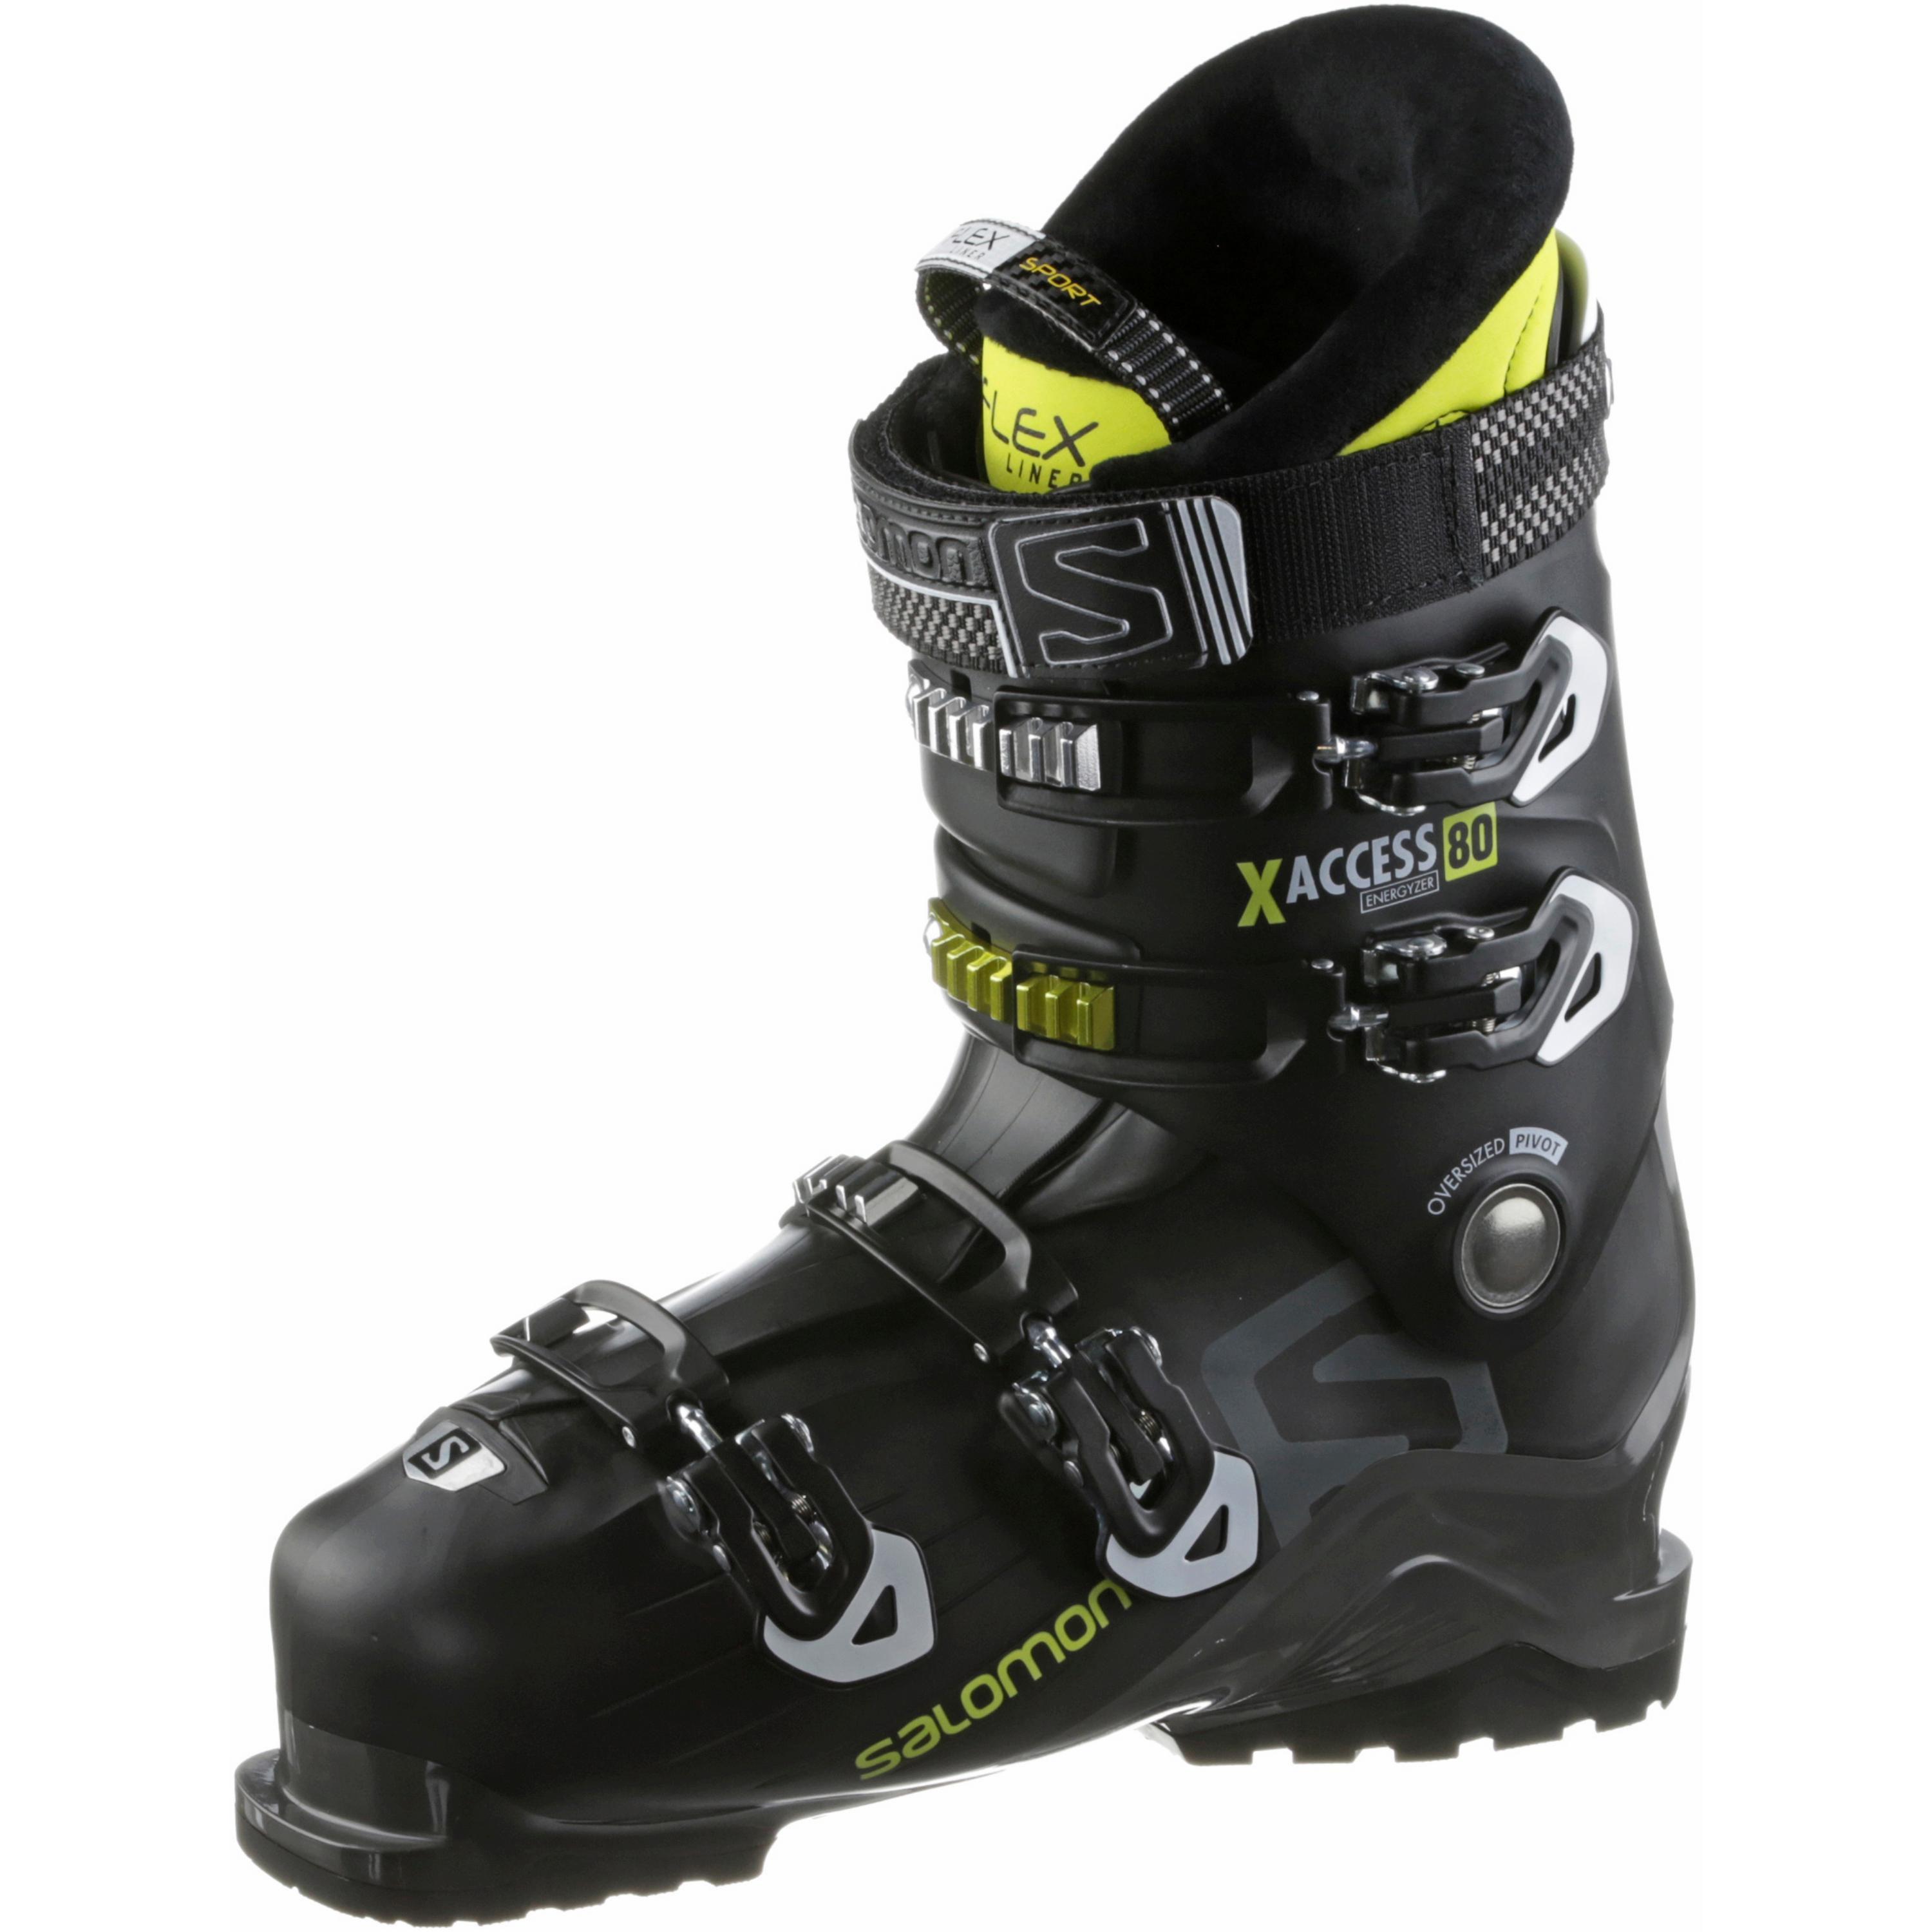 large discount online for sale new release Salomon X Access 80 - Skischuhe - Ski-Test-Ratgeber